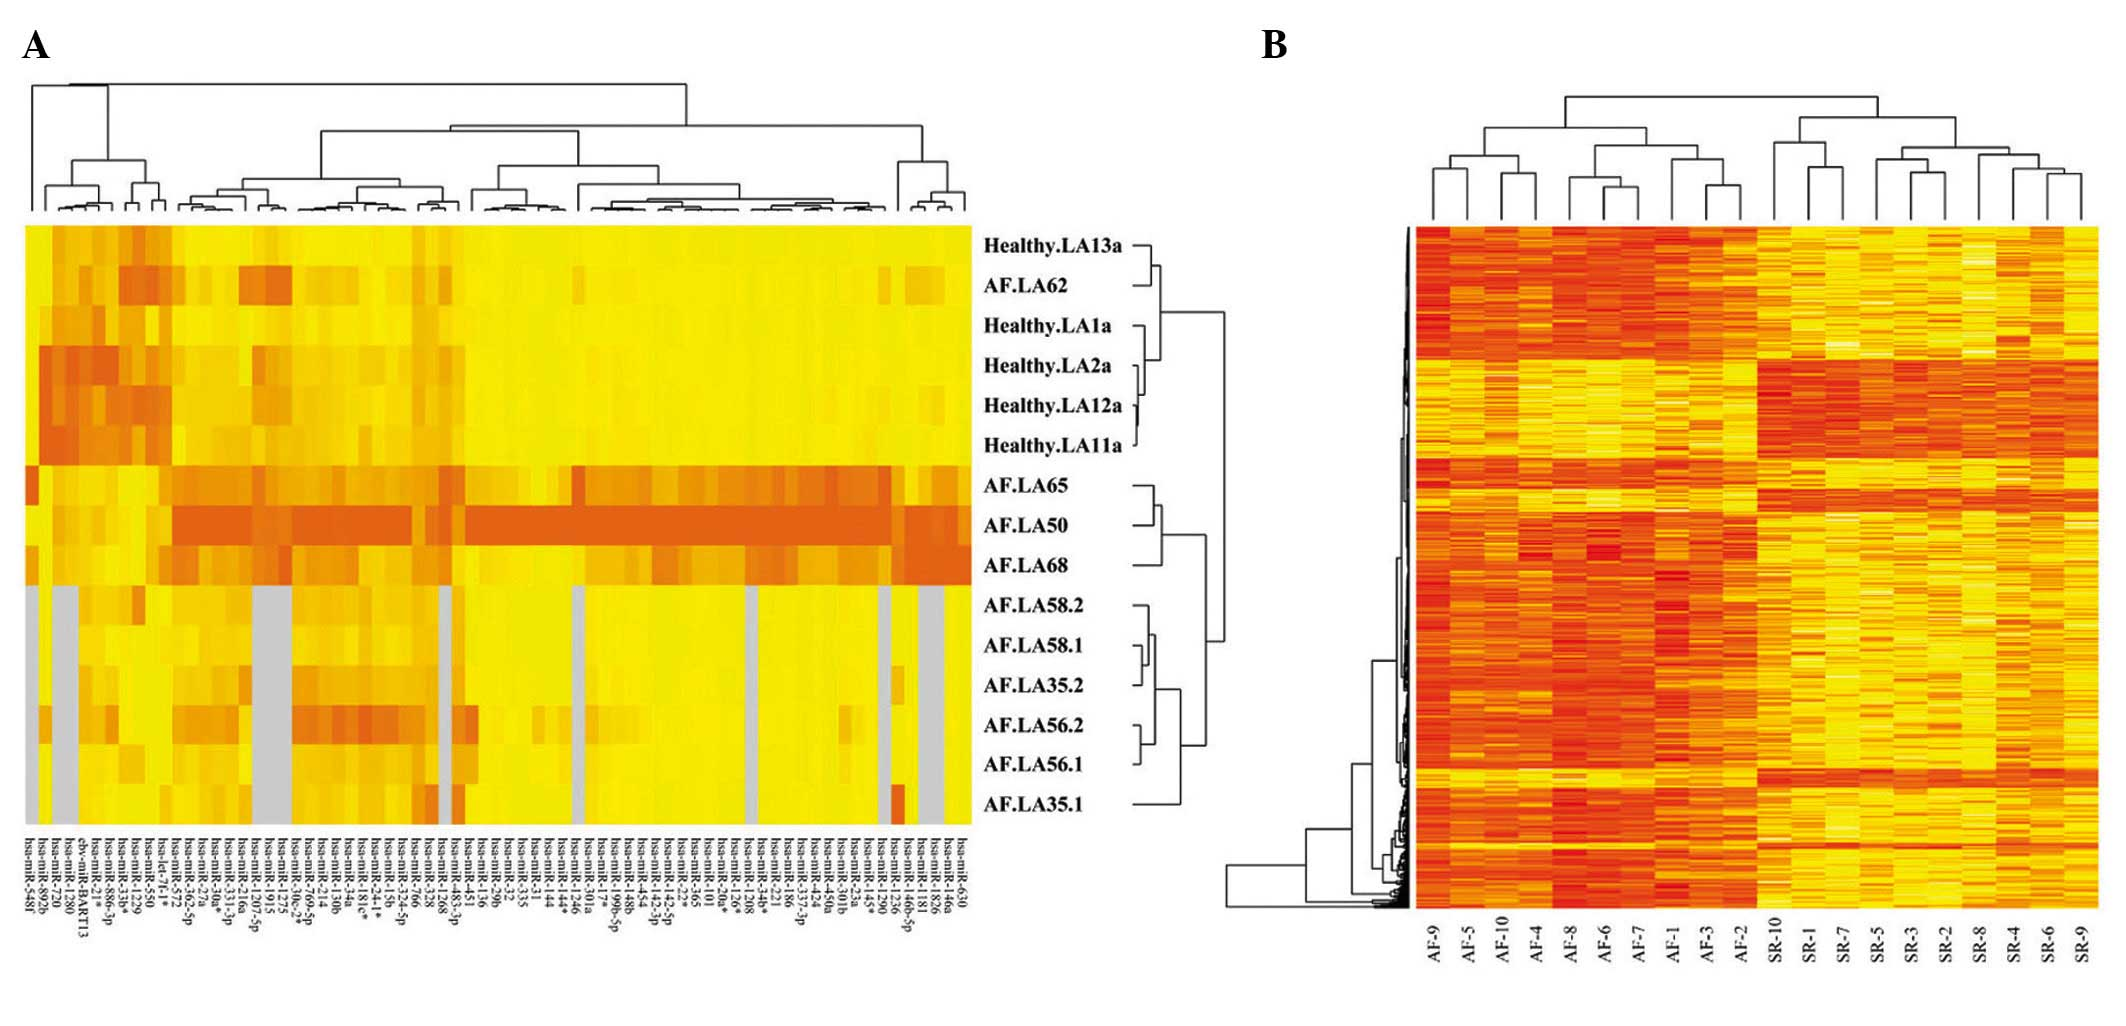 how to read a microarray heat map